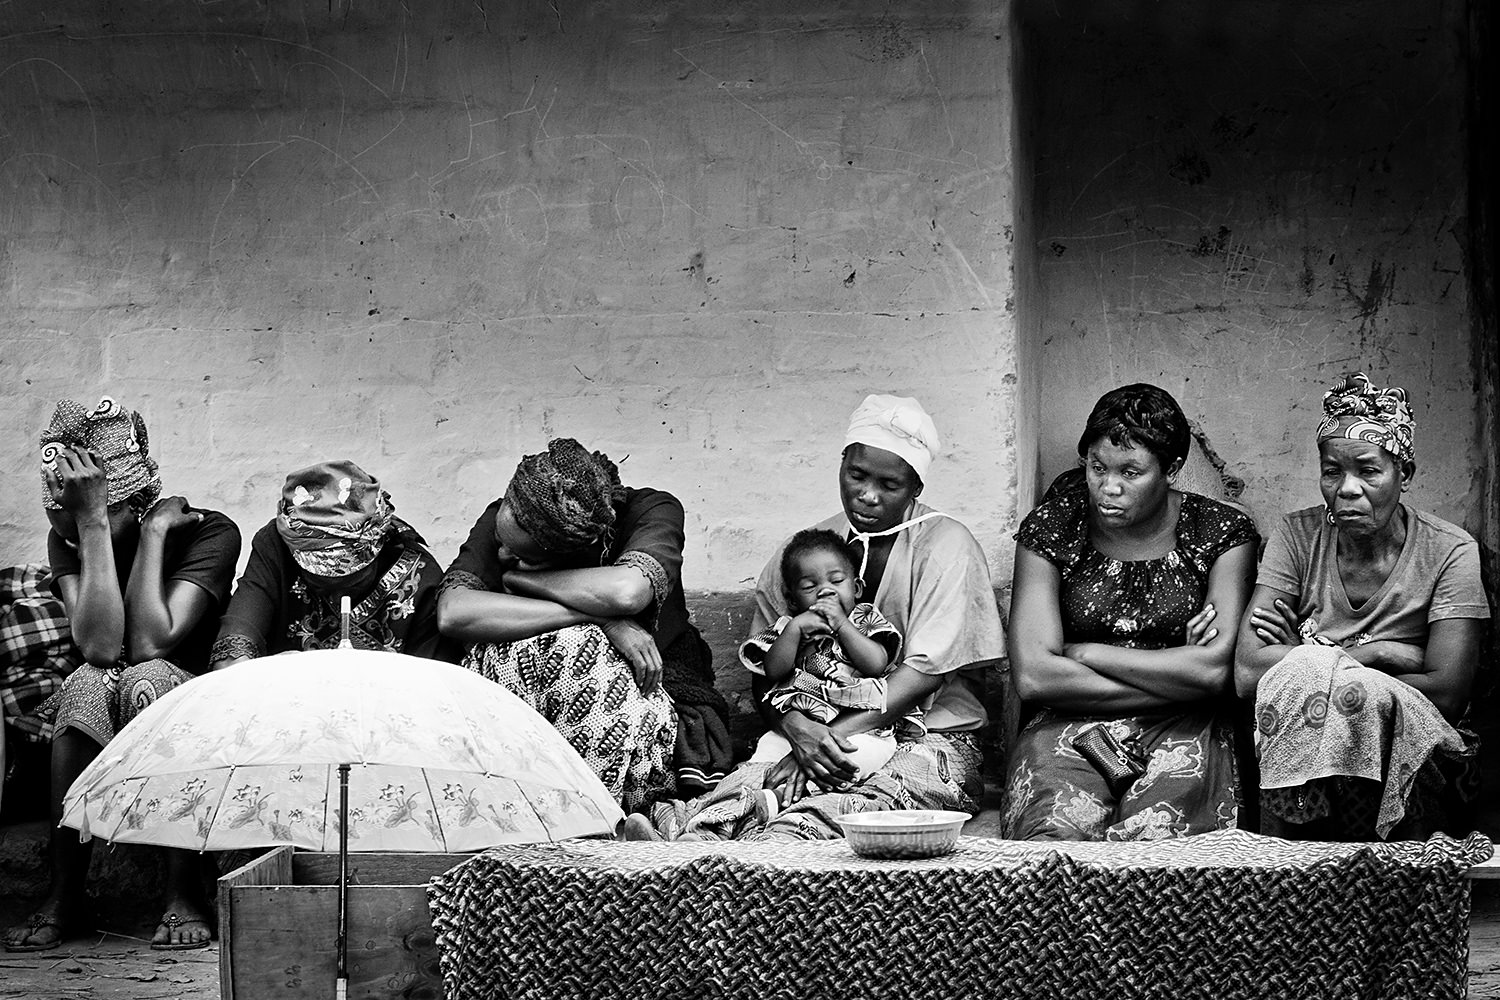 A moment from a funeral in a small village outside Lusaka-Zambia